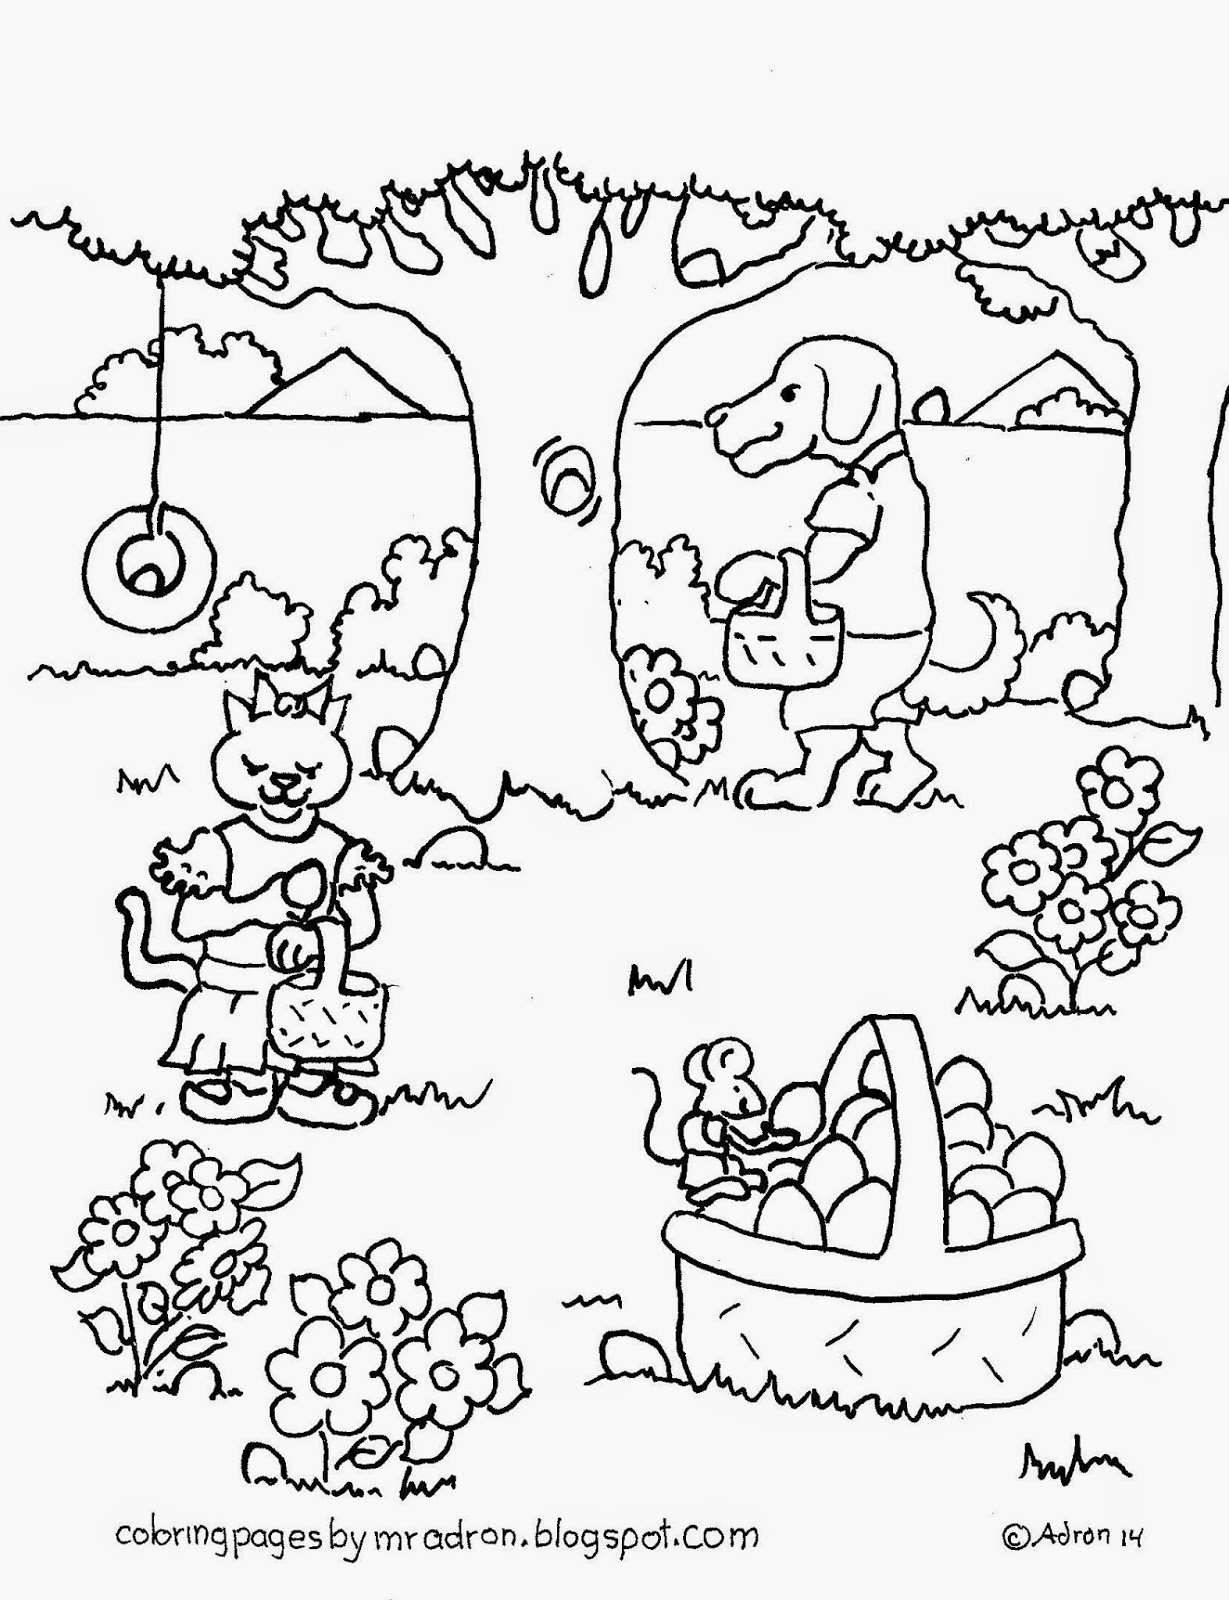 An illustration of Easter to be printed and color.